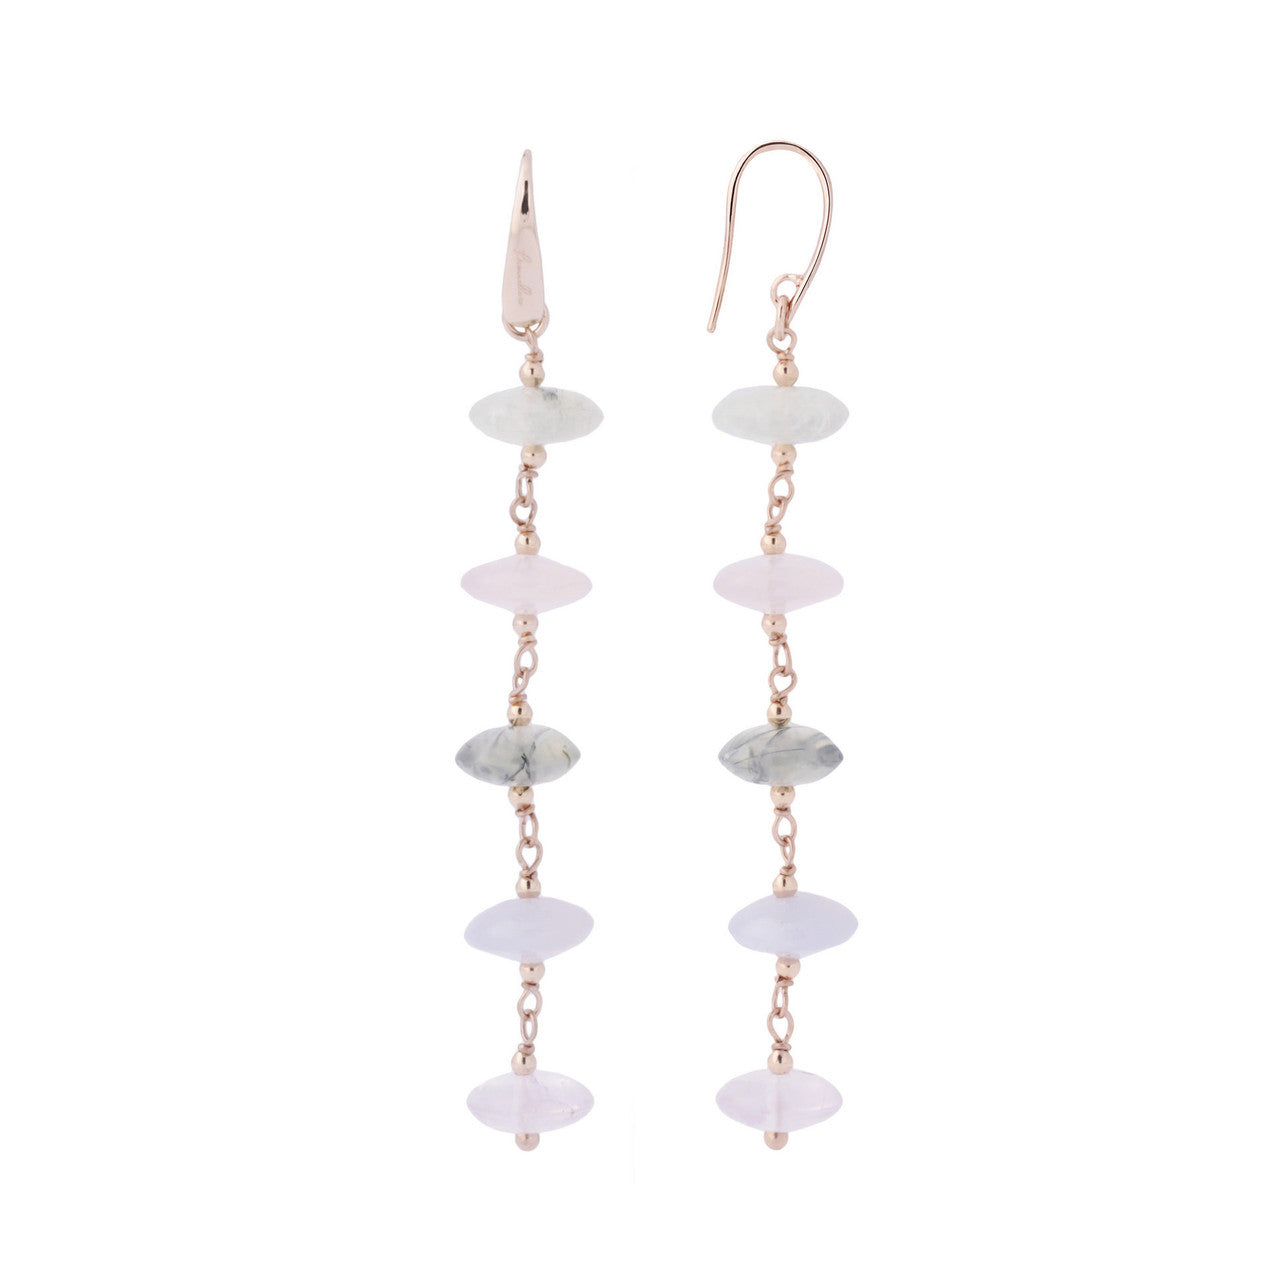 stone riah fashion earrings earring products natural dangling